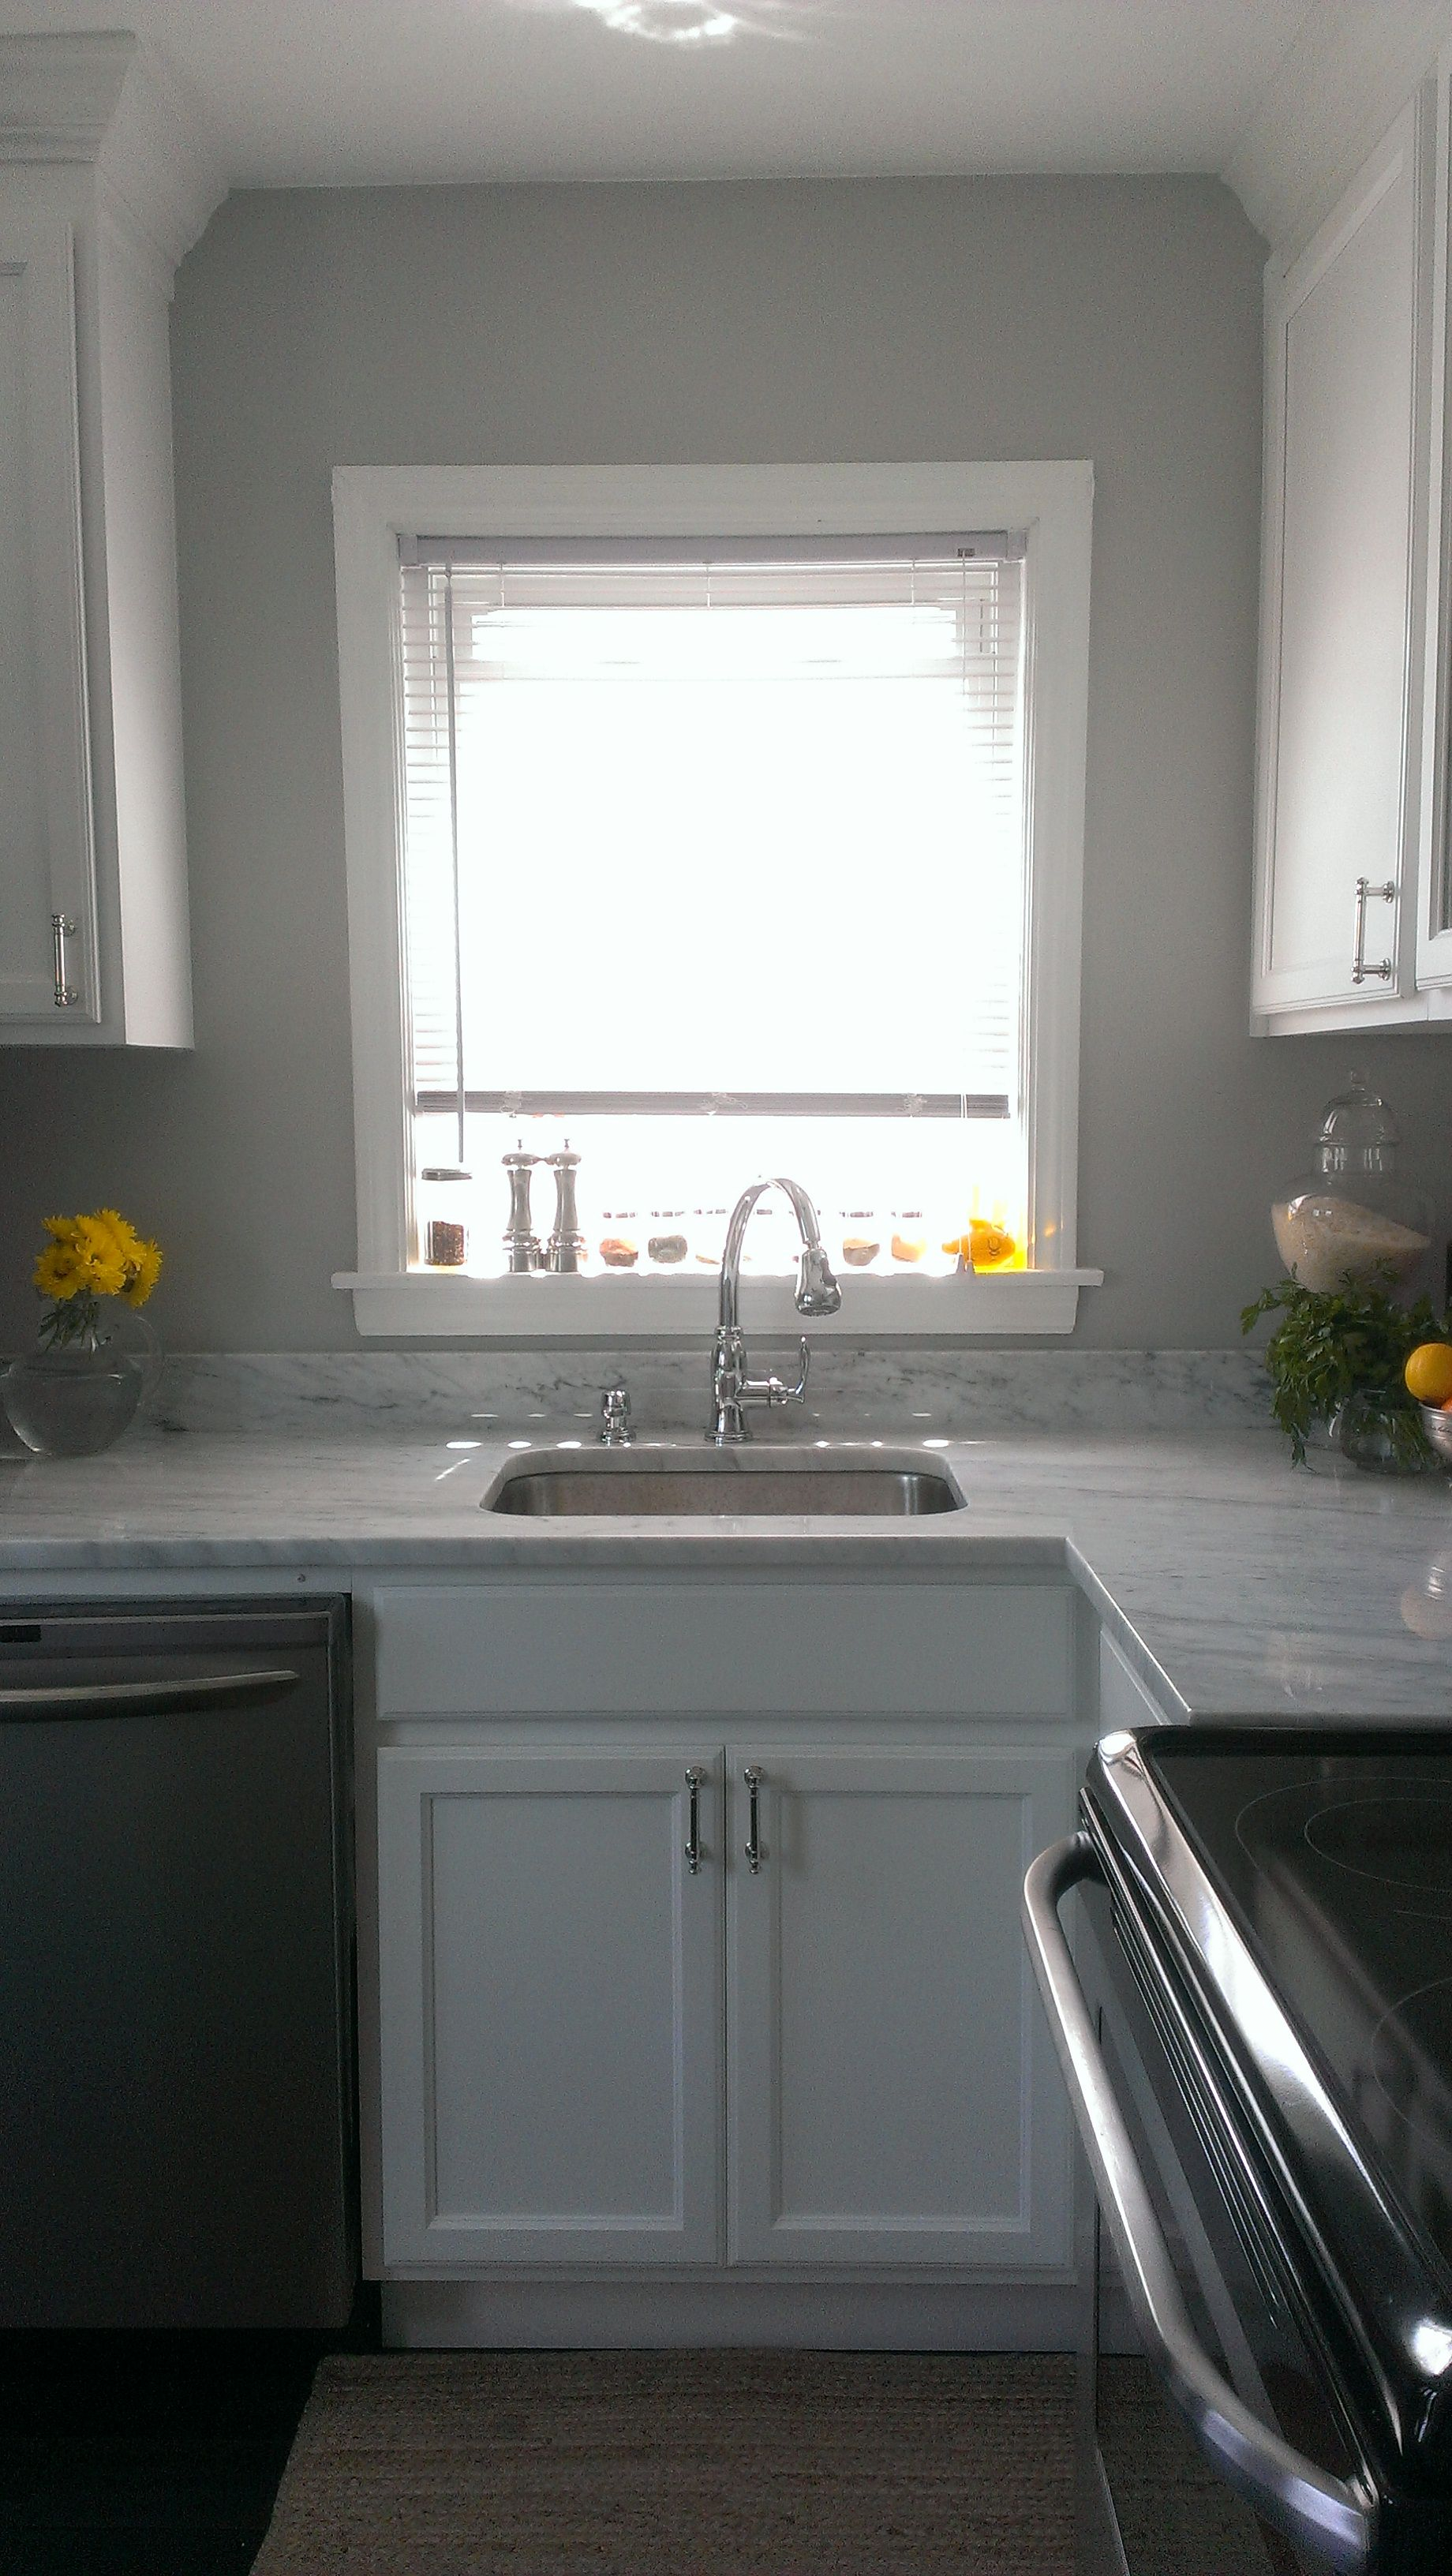 Gray wall white cabinets deep undermount sink carrara White cabinets grey walls